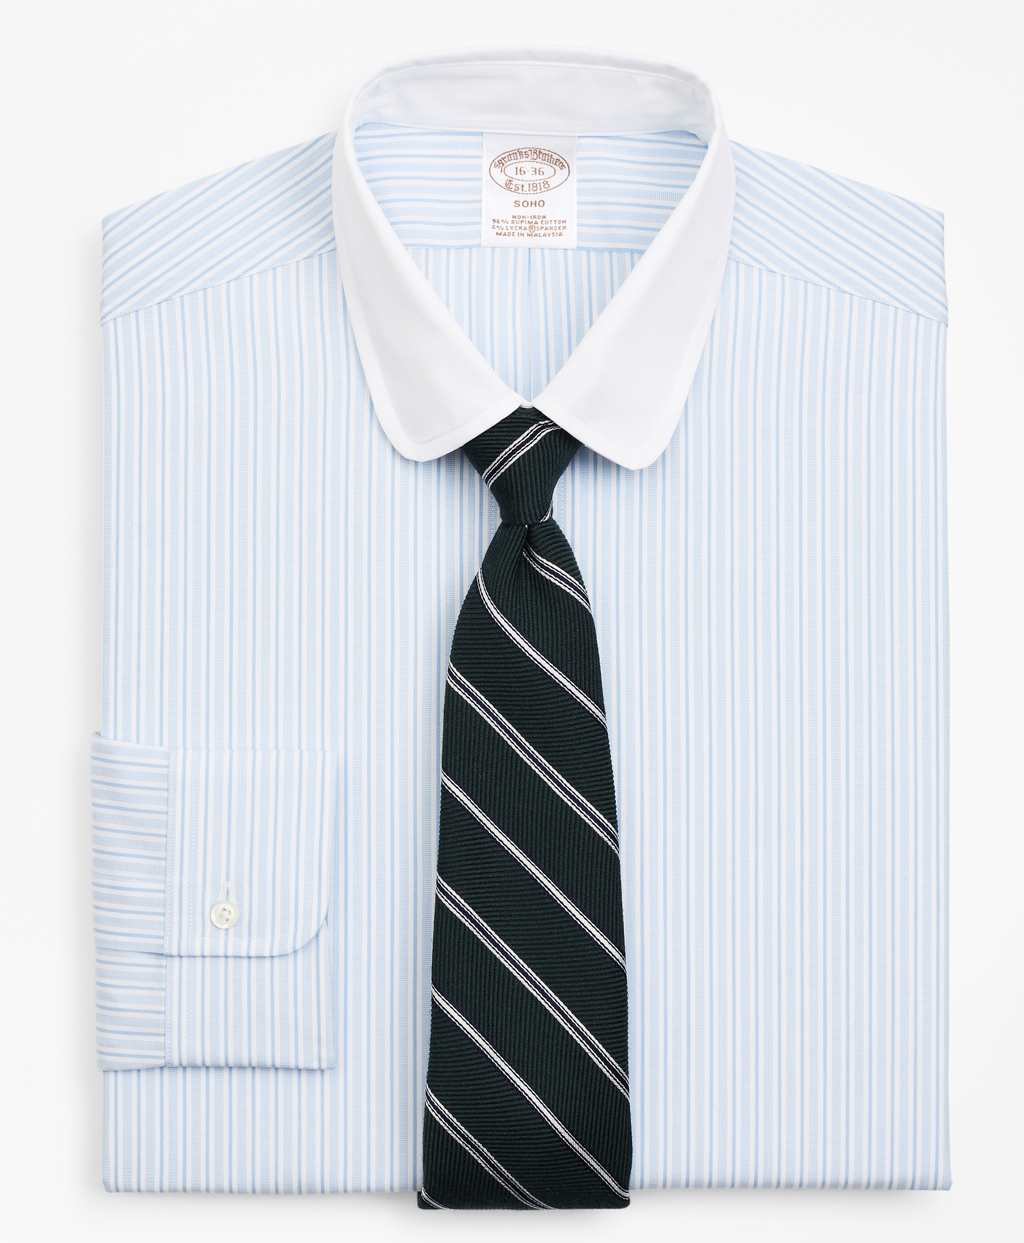 Mens Vintage Shirts – Casual, Dress, T-shirts, Polos Brooks Brothers Mens Stretch Soho Extra-Slim Fit Dress Shirt Stripe $98.00 AT vintagedancer.com